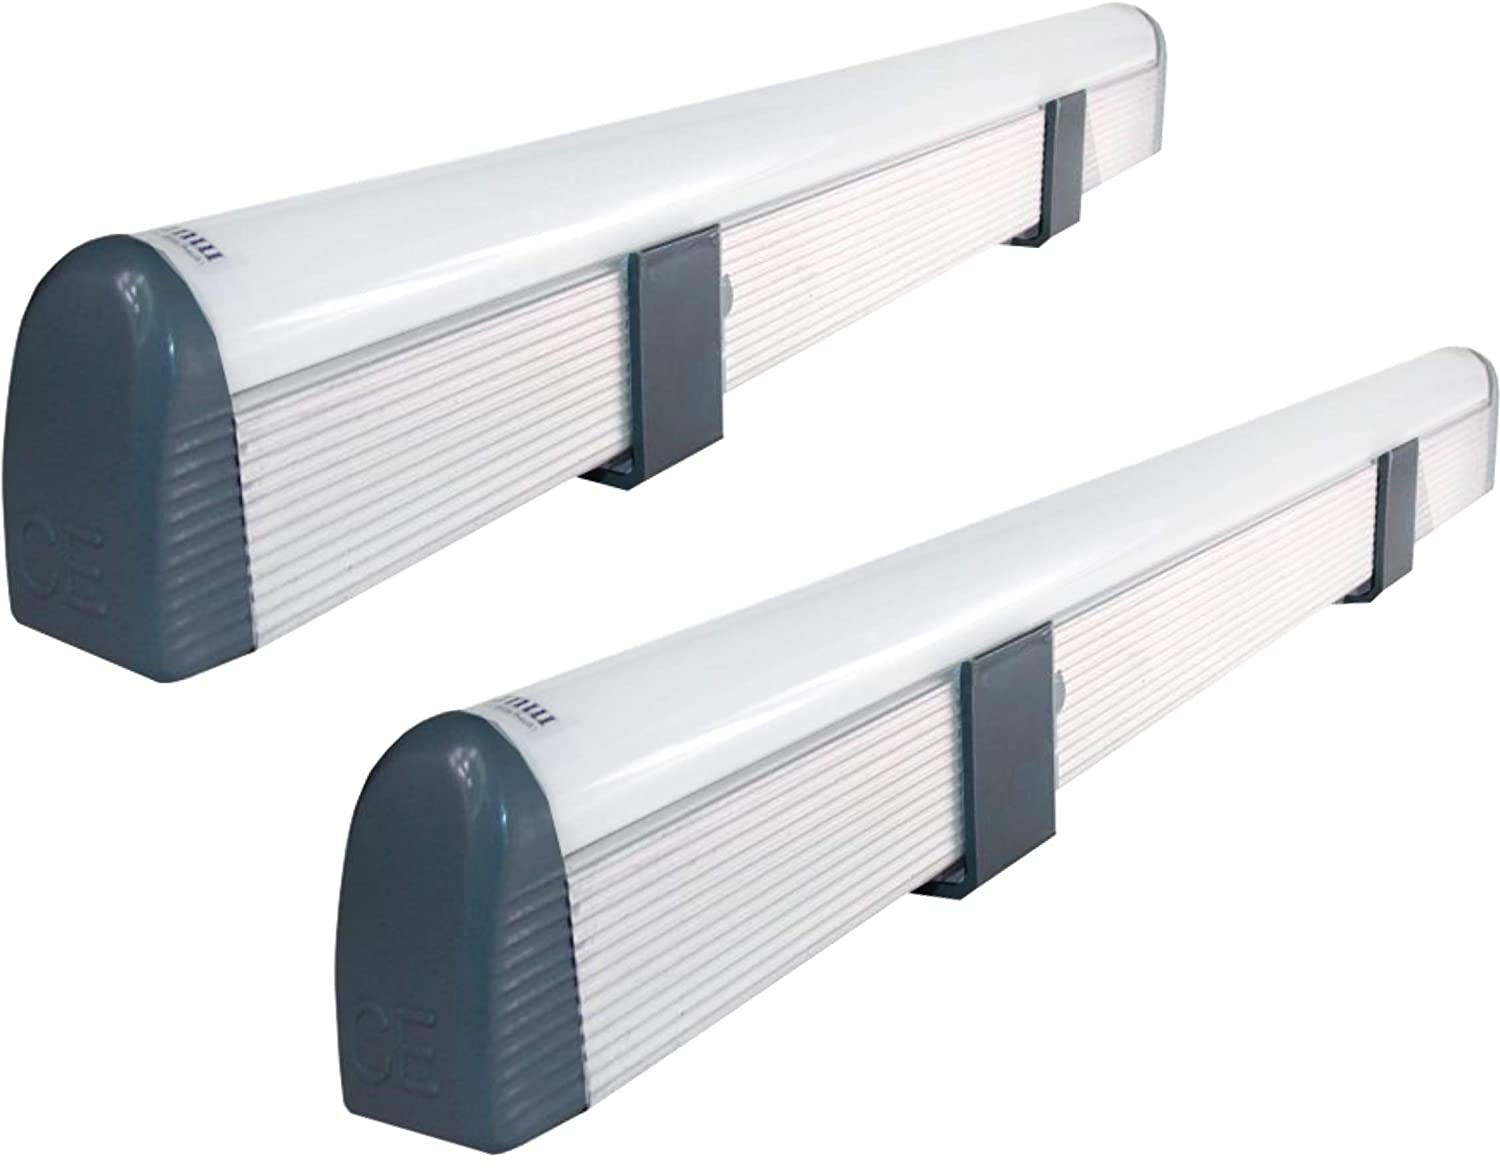 Murphy LED Tube Light 2 Feet 15W